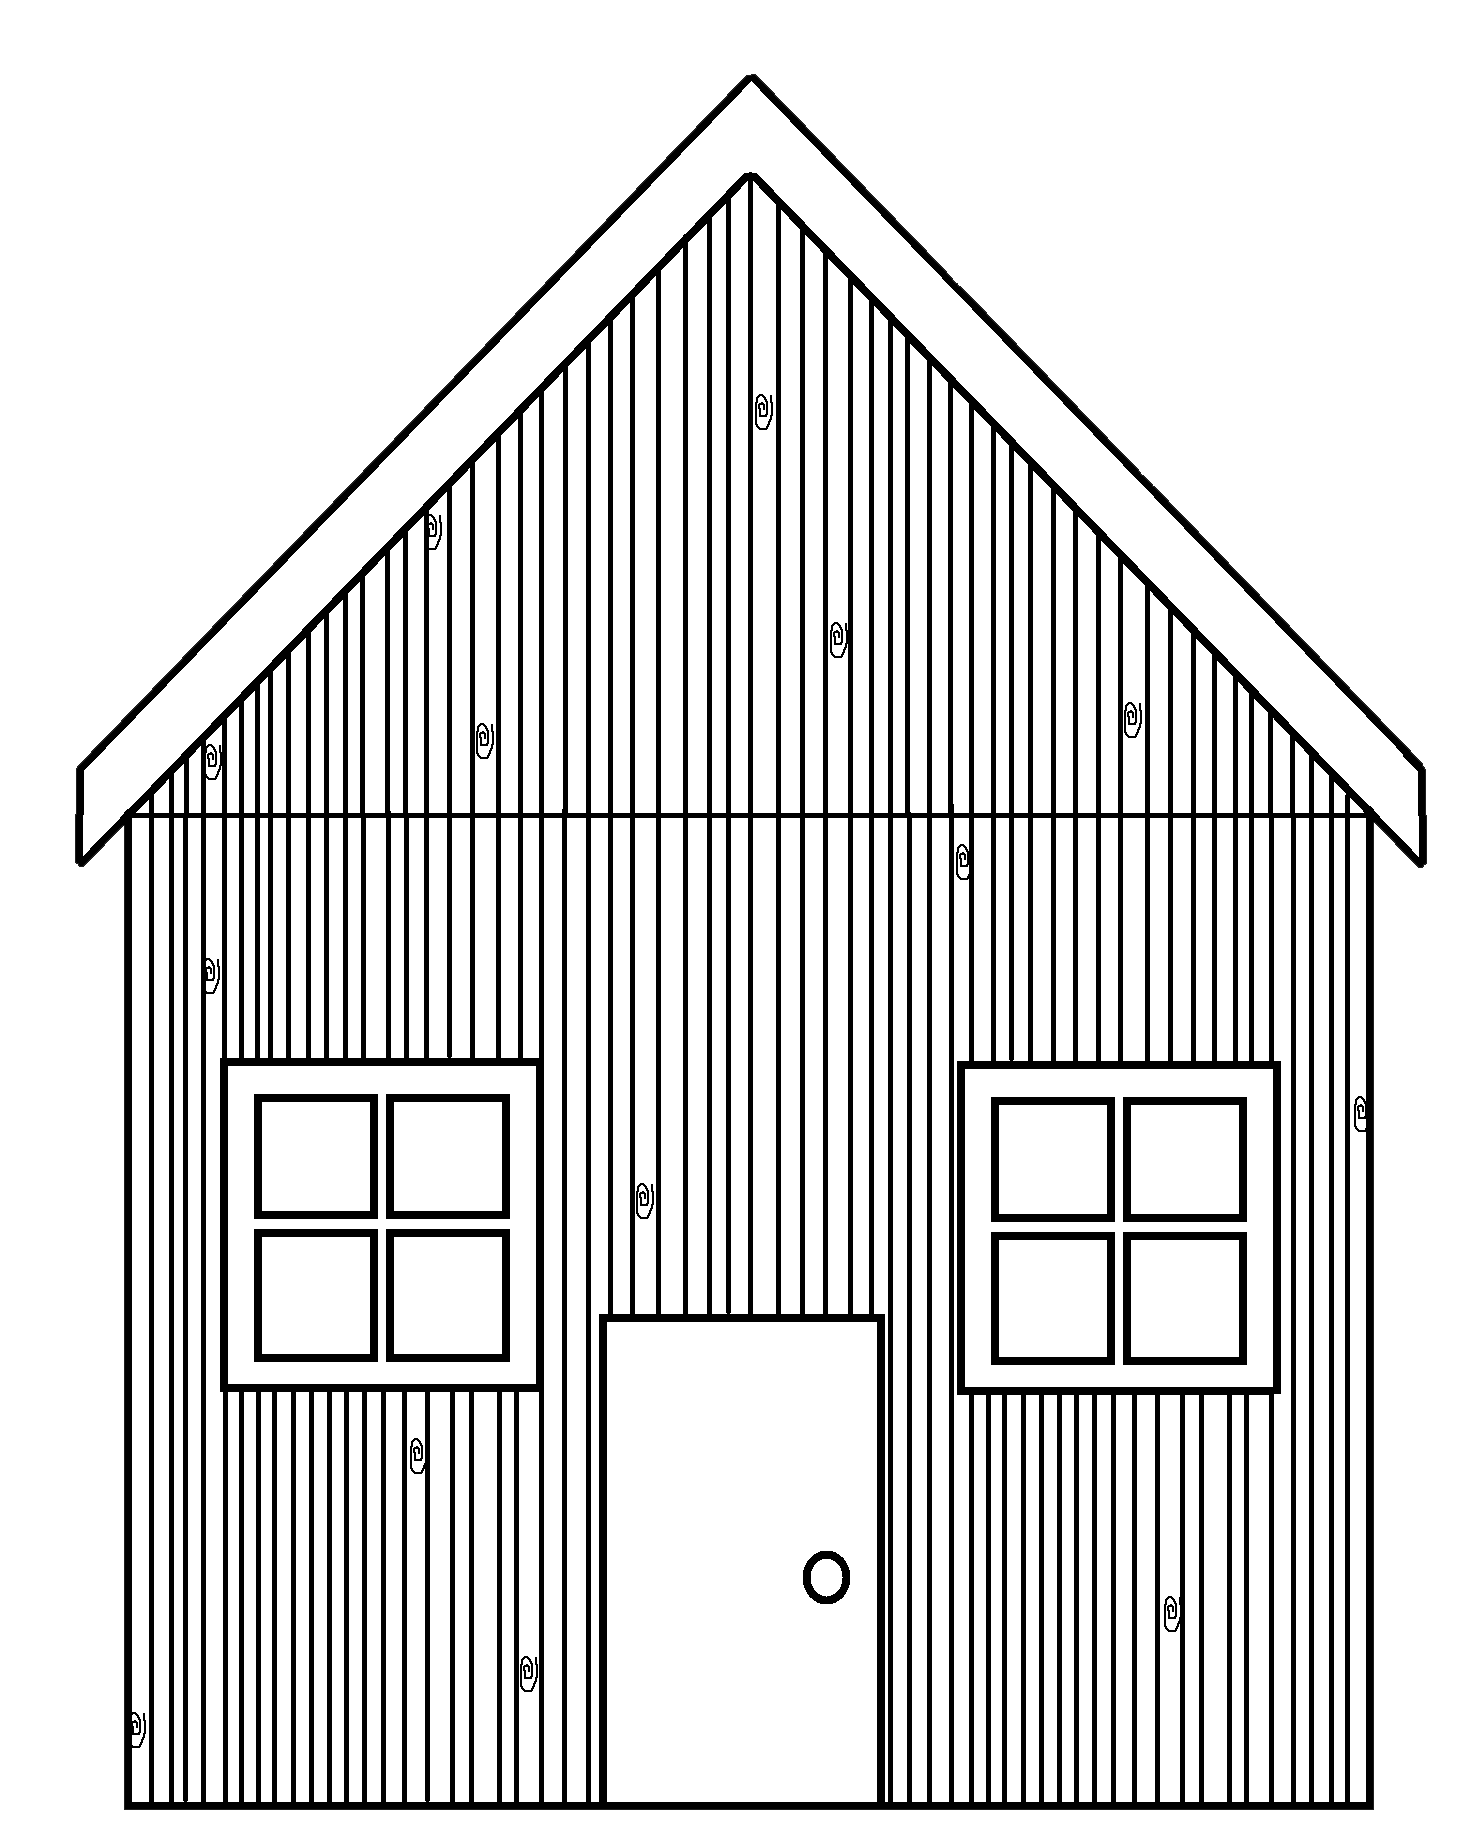 House outline clipart black and white picture freeuse stock Free Straw House Cliparts, Download Free Clip Art, Free Clip Art on ... picture freeuse stock